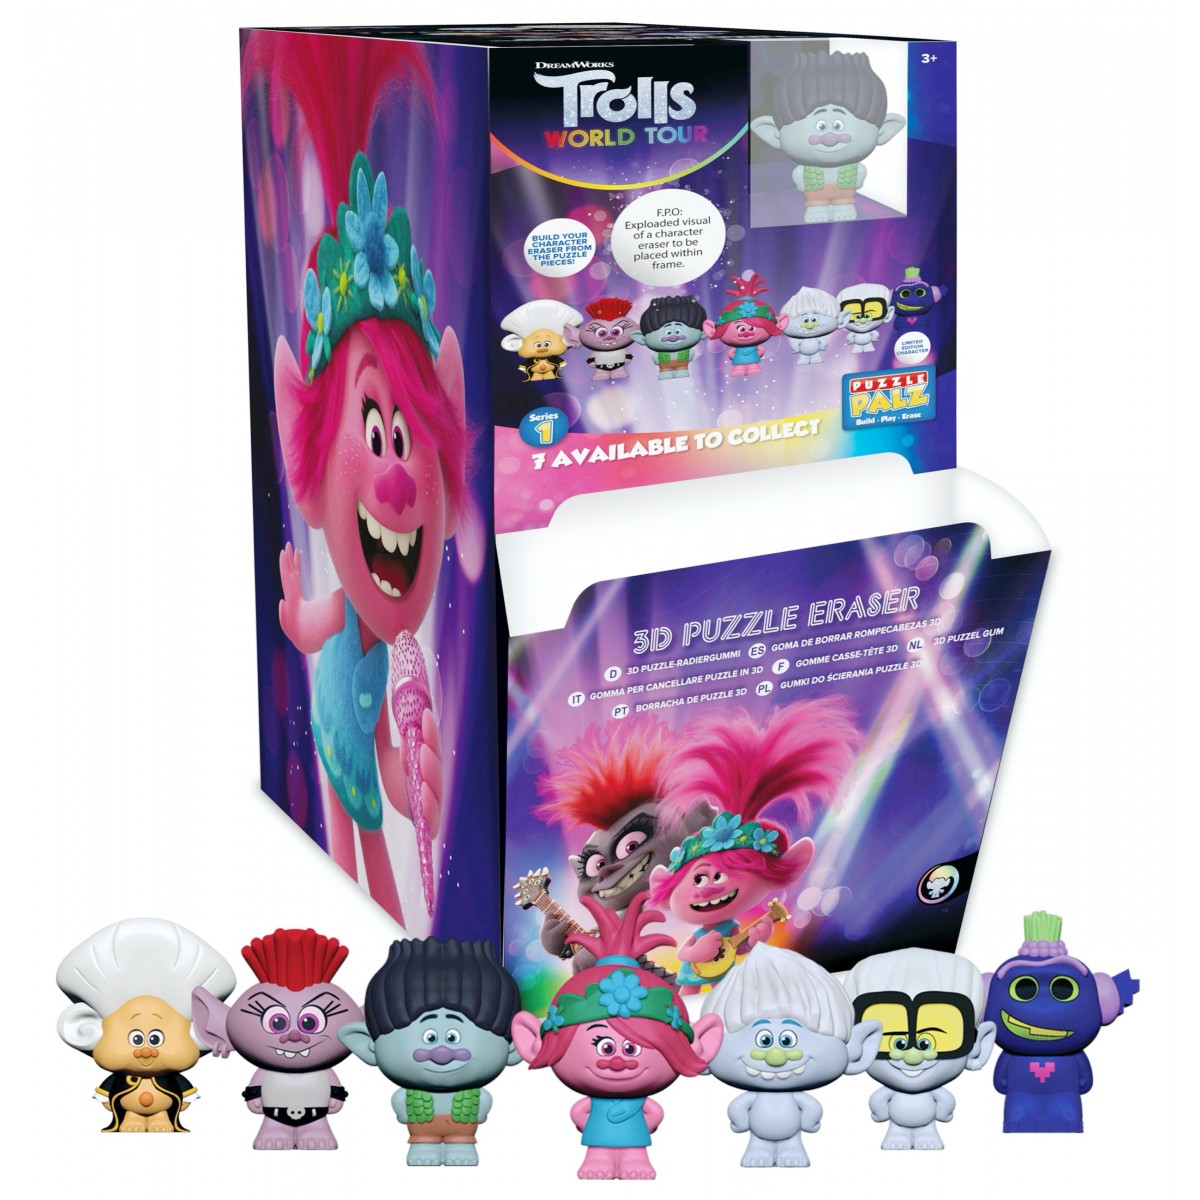 Trolls World Tour Puzzle Eraser